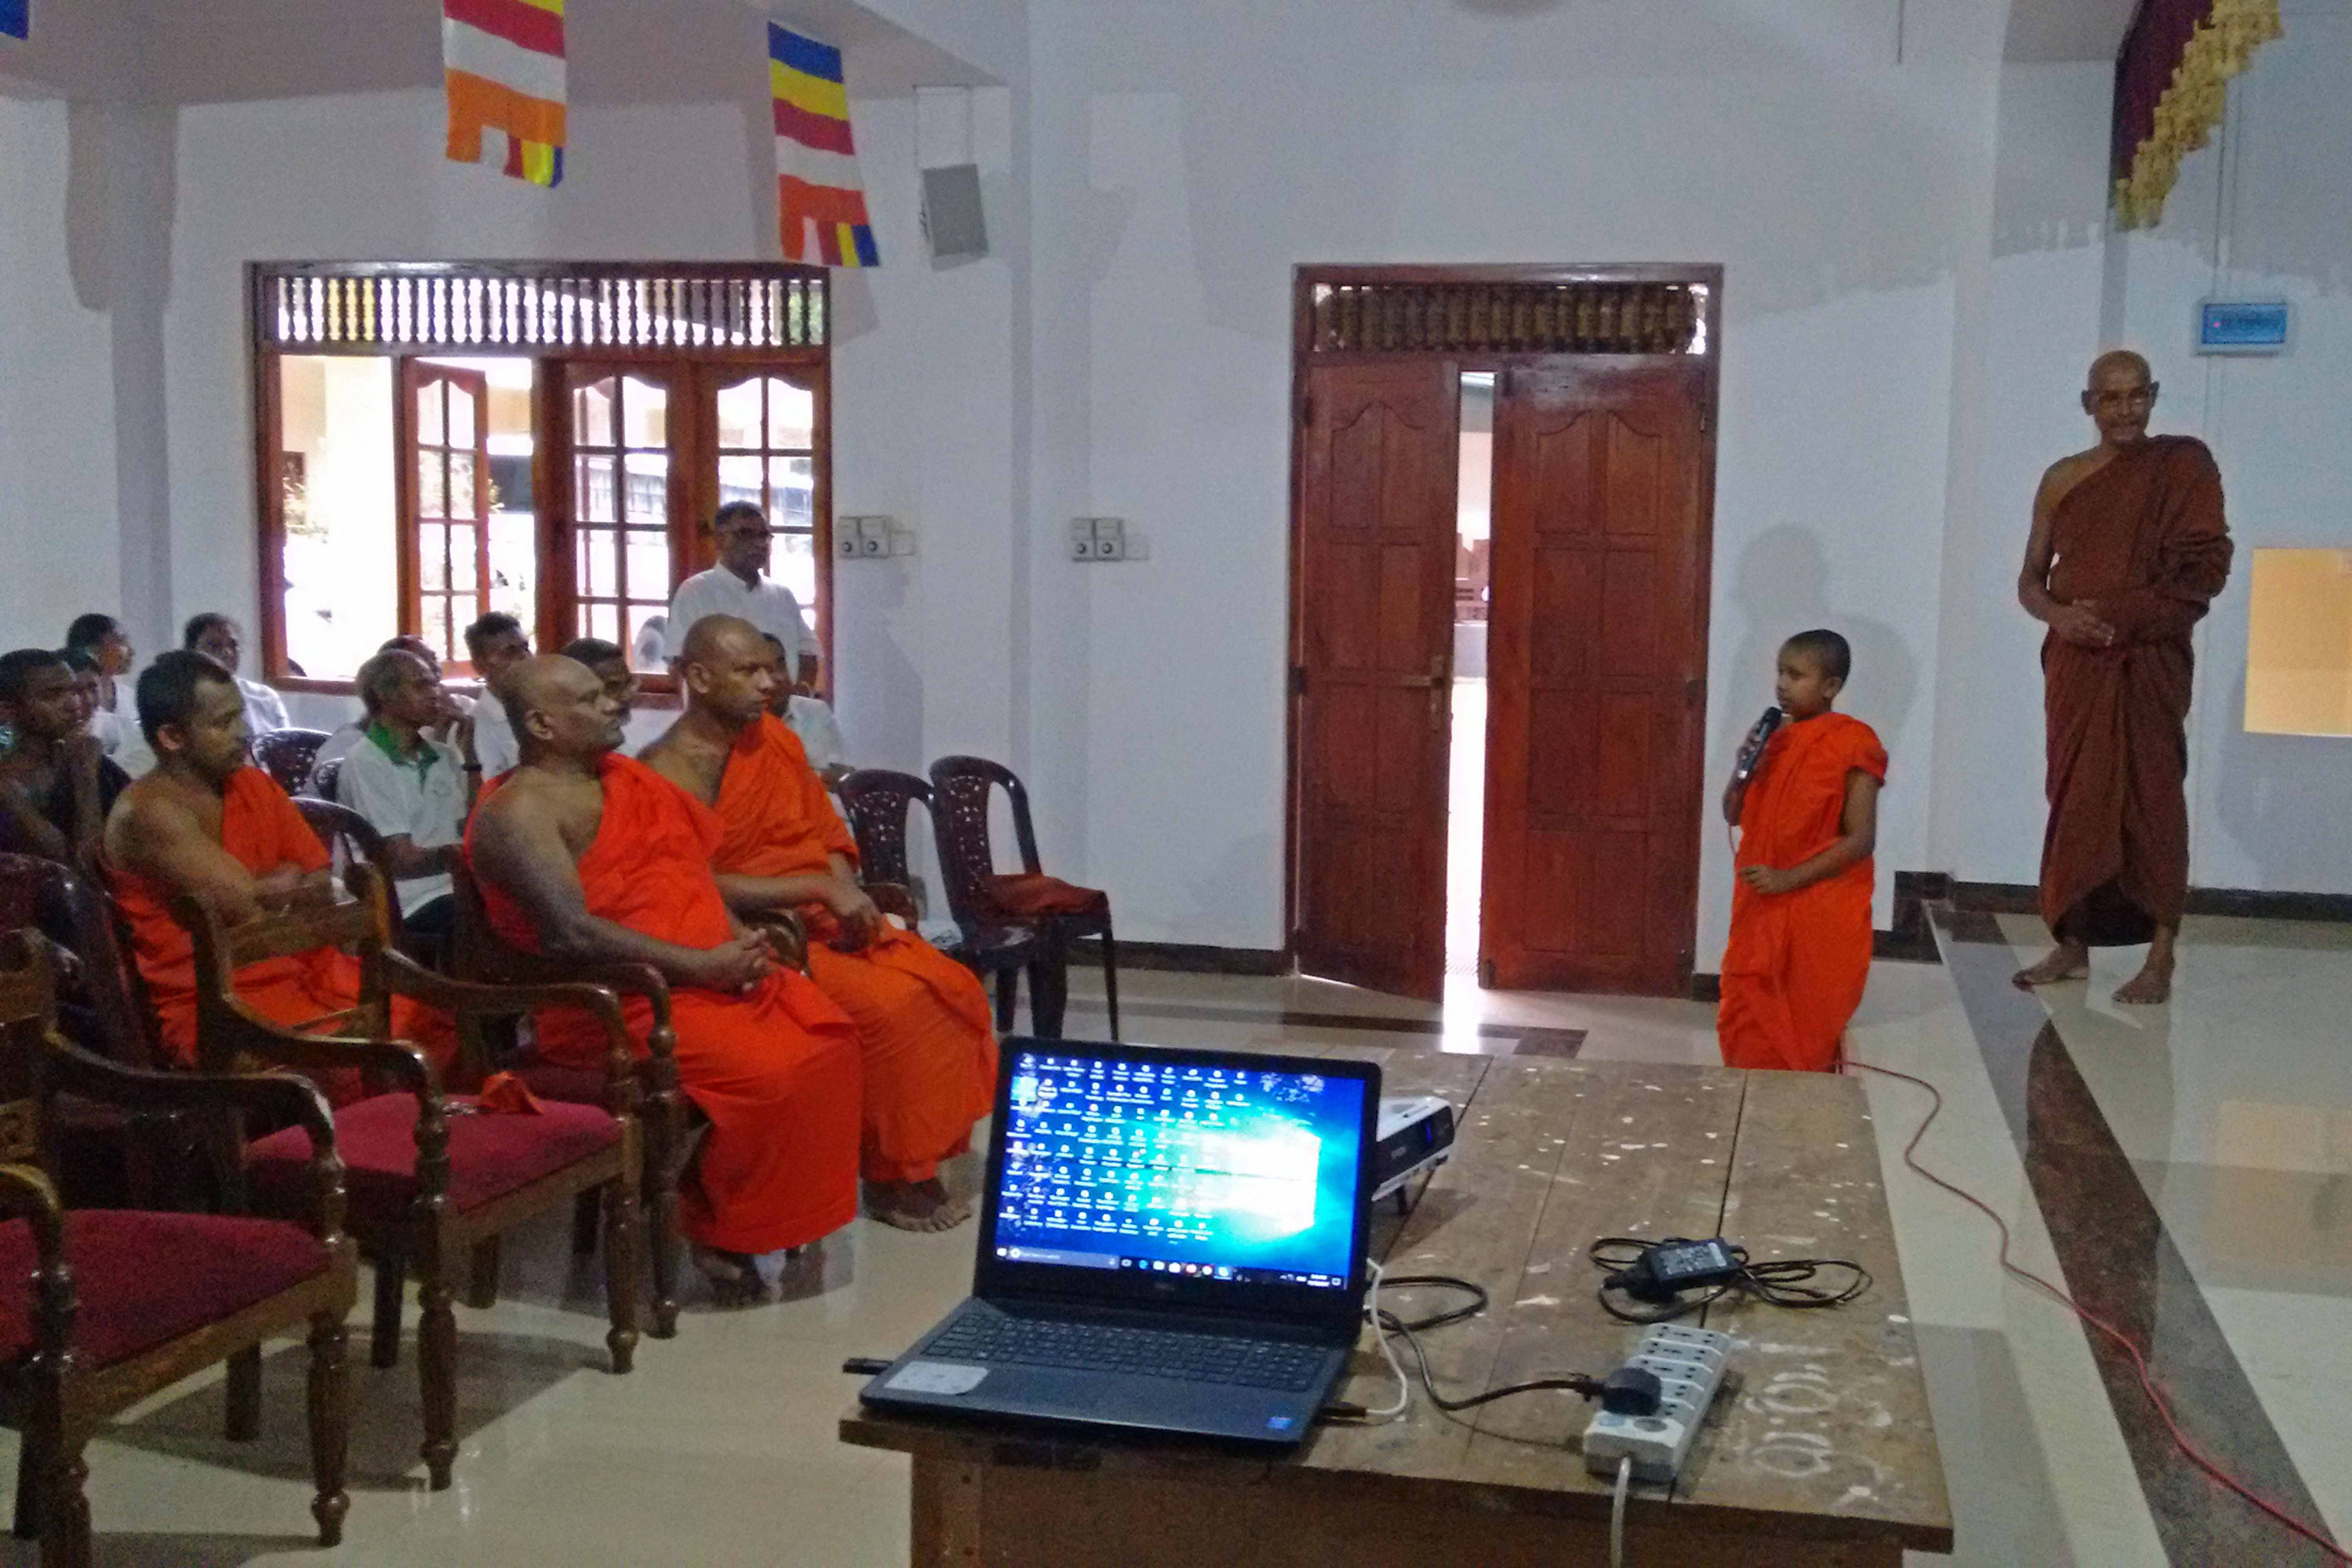 Sati Pirivena Introduction Programme at Mahavihara Maha Pirivena - Asgiriya, Kandy (12)